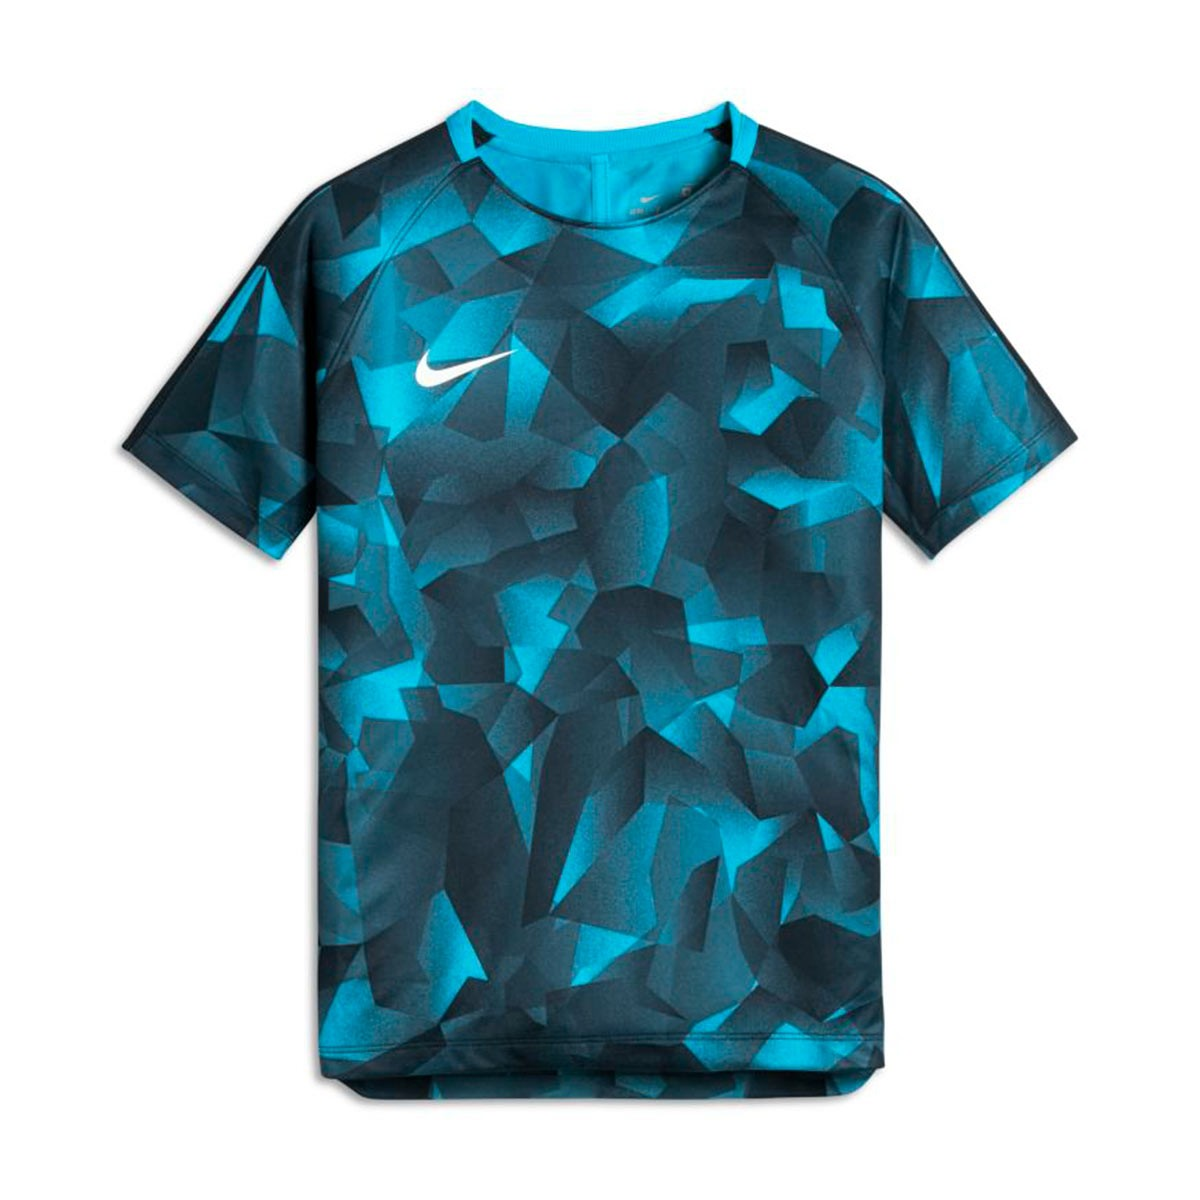 4165658f61704 Camiseta Nike Squad Dry SS GX CL Niño Light blue fury-Armory navy-White -  Tienda de fútbol Fútbol Emotion